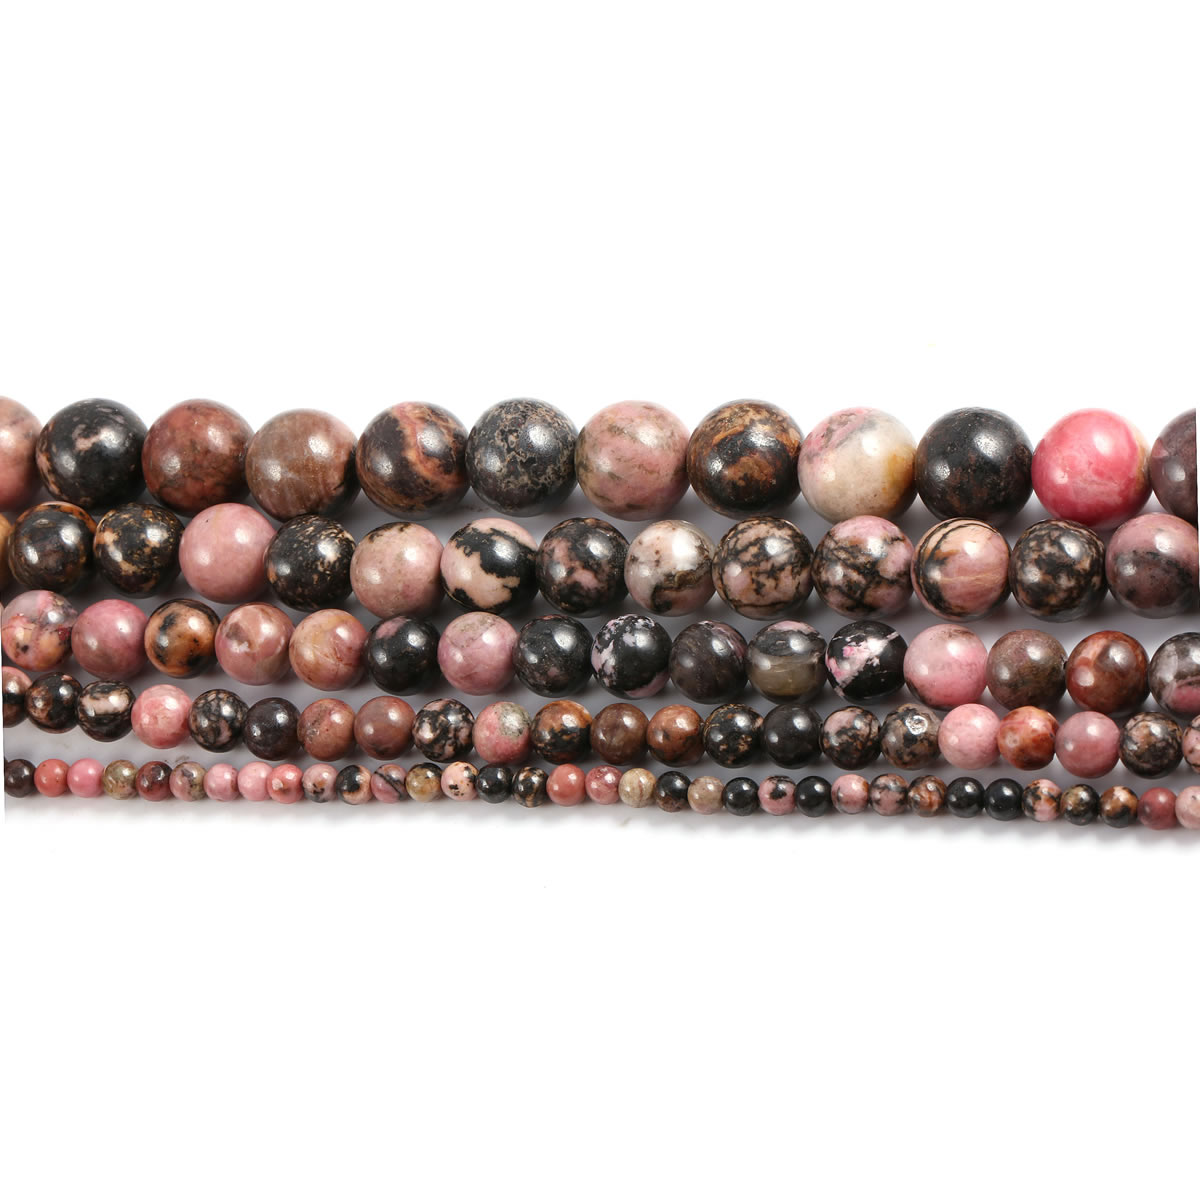 Natural Black Line Rhodochrosite Stone Beads Round Loose Beads for DIY Necklace Bracelet Jewelry Making Accessories Strand 15''  - buy with discount